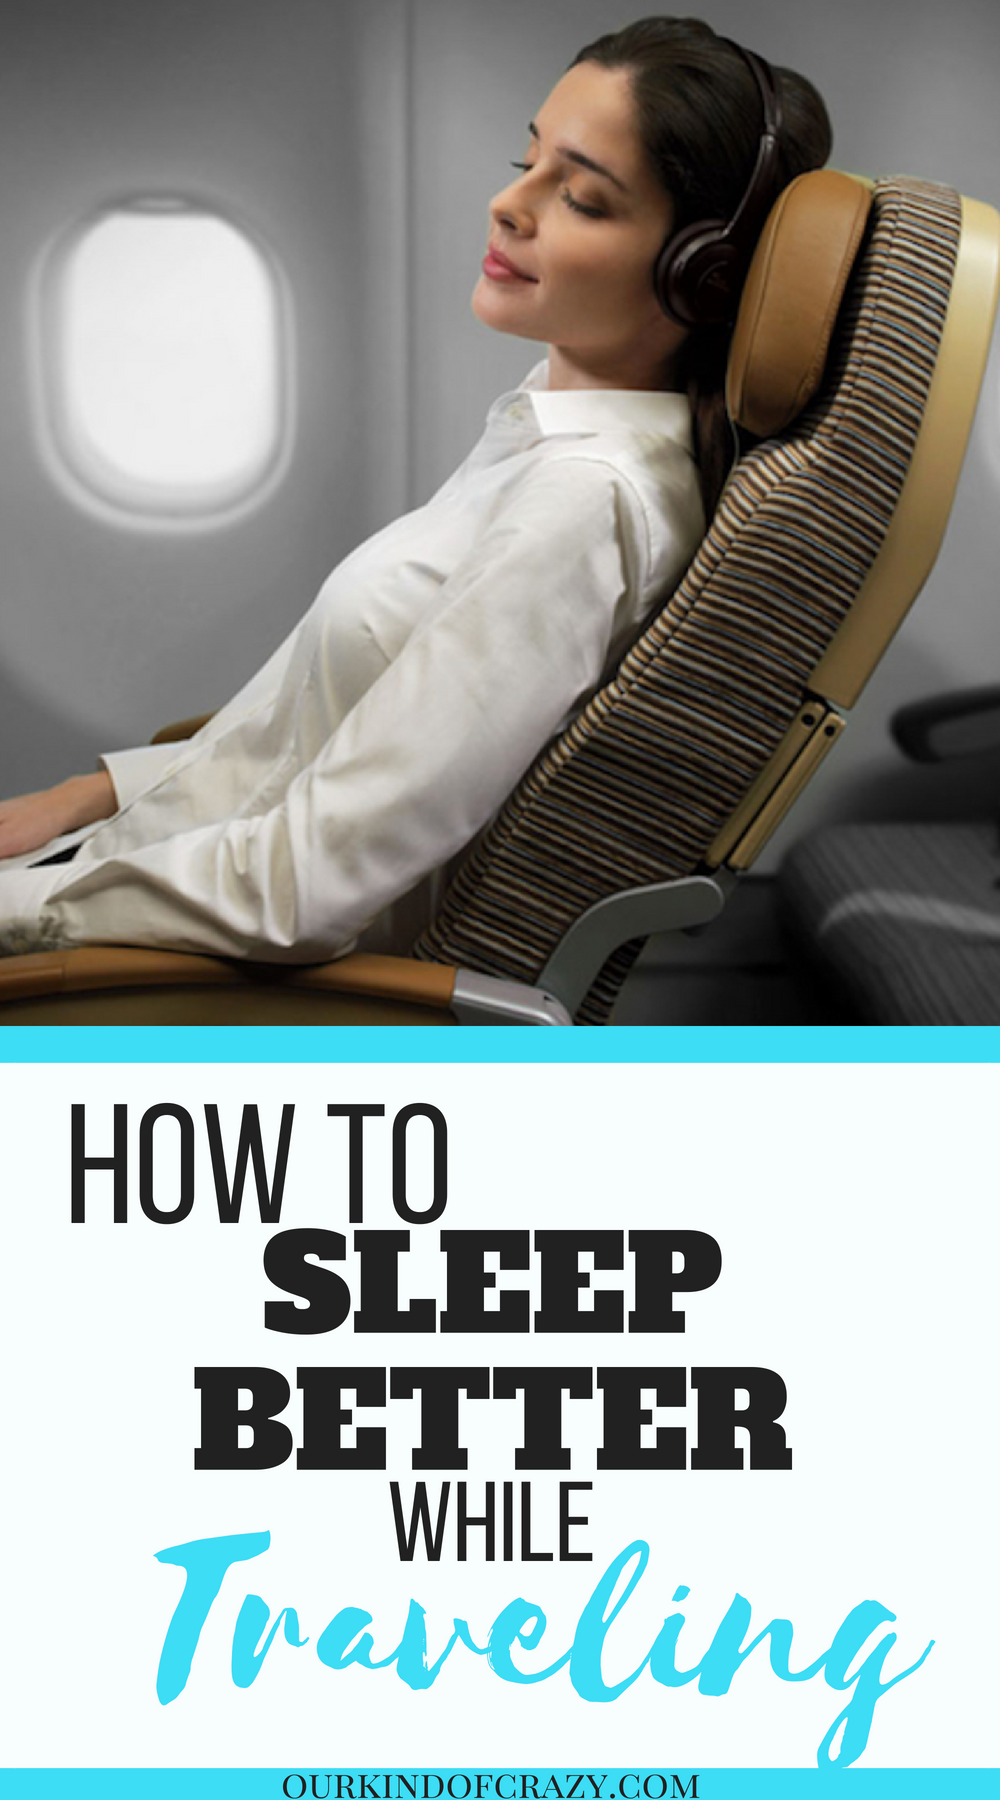 How to Get Better Sleep While Traveling